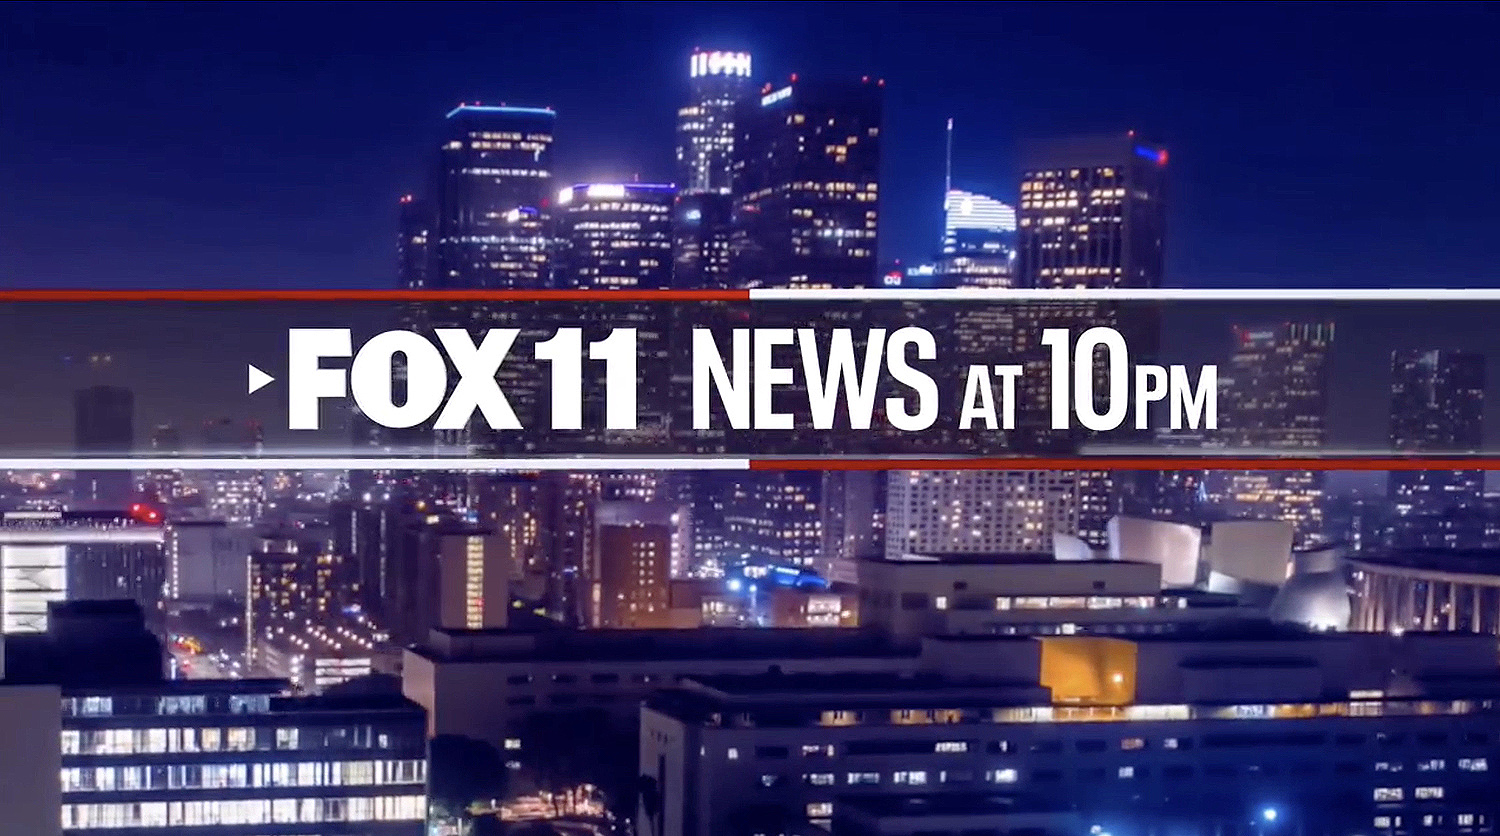 NCS_Fox-11-News_KTTV-Motion-Graphics-2020_47